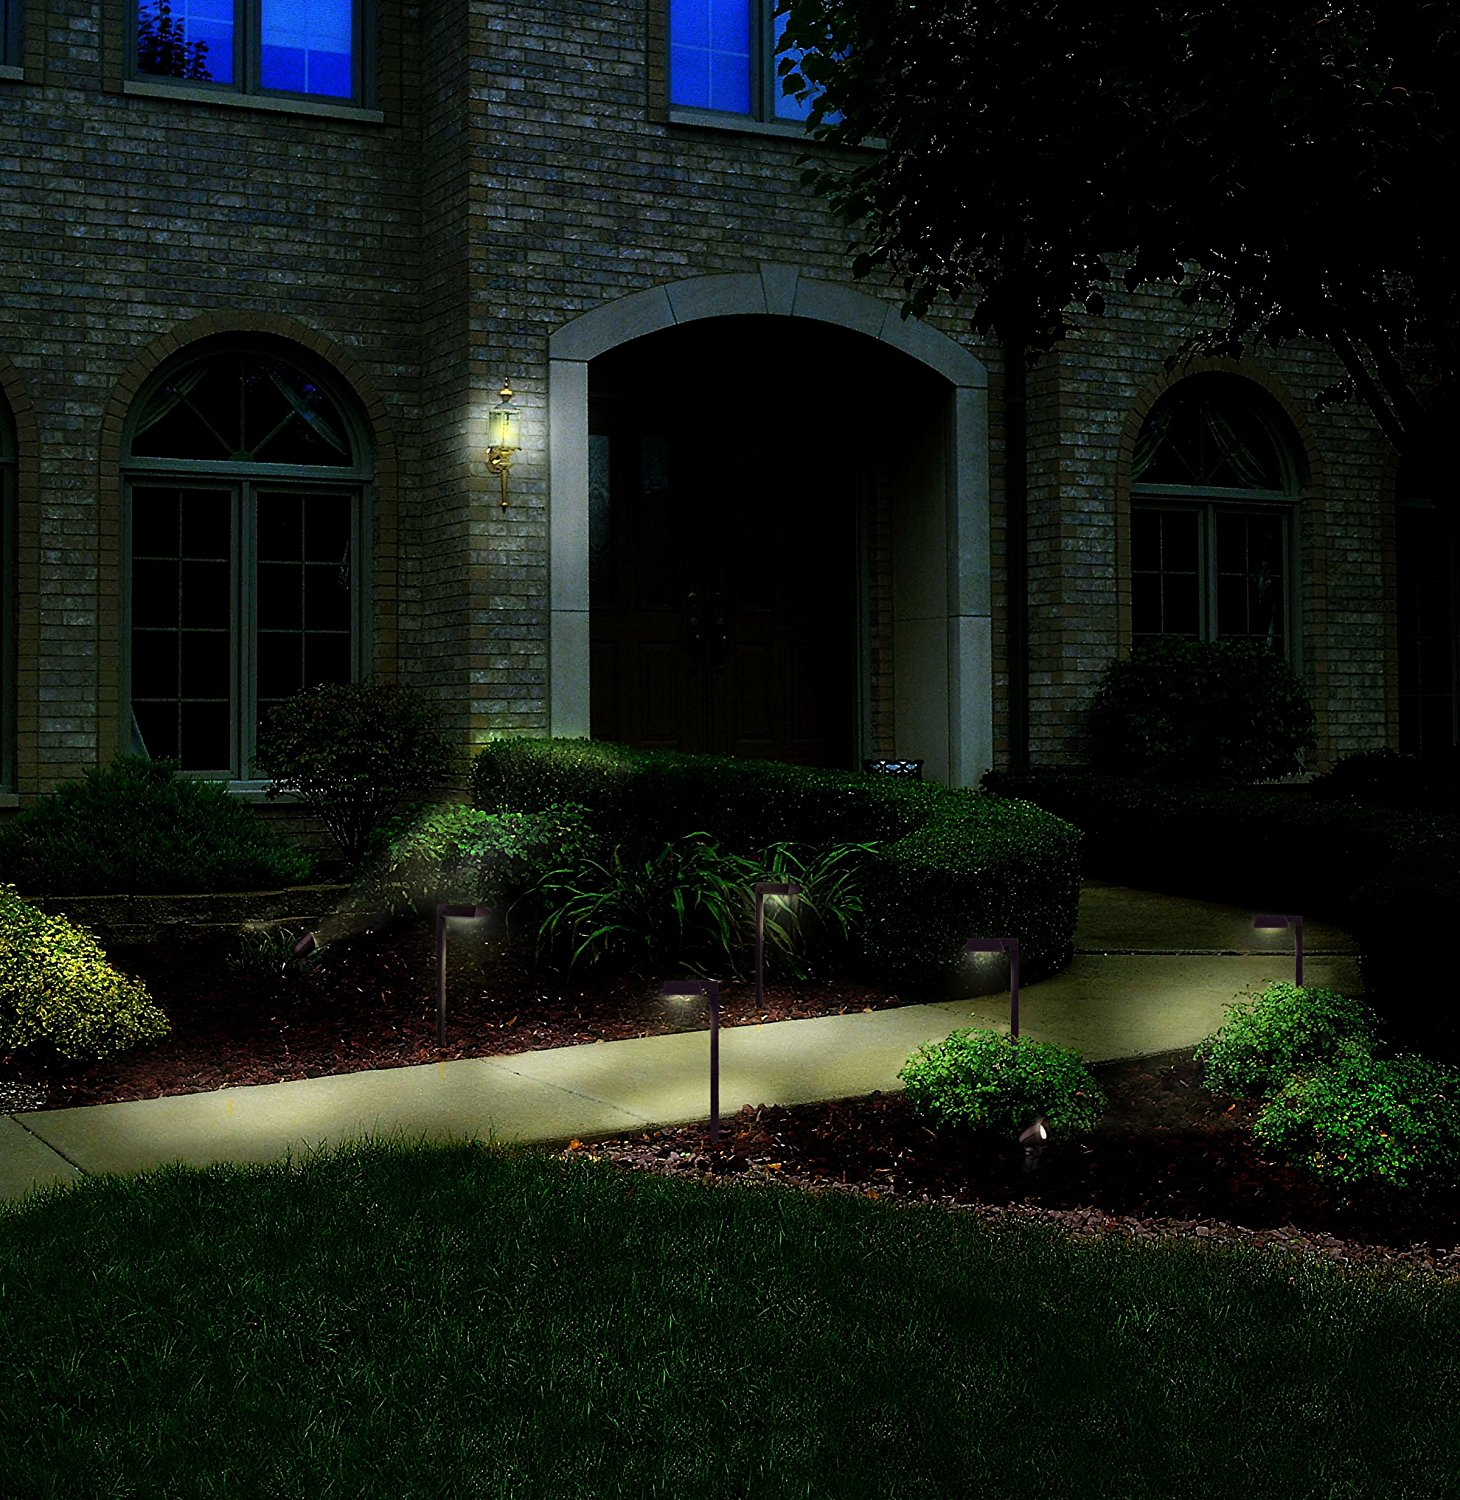 Malibu Equinox 6 Pack Led Light Kit Low Voltage Landscape Lighting 4 Pathway Lights 2 Floodlights 75 Of Cable 45w